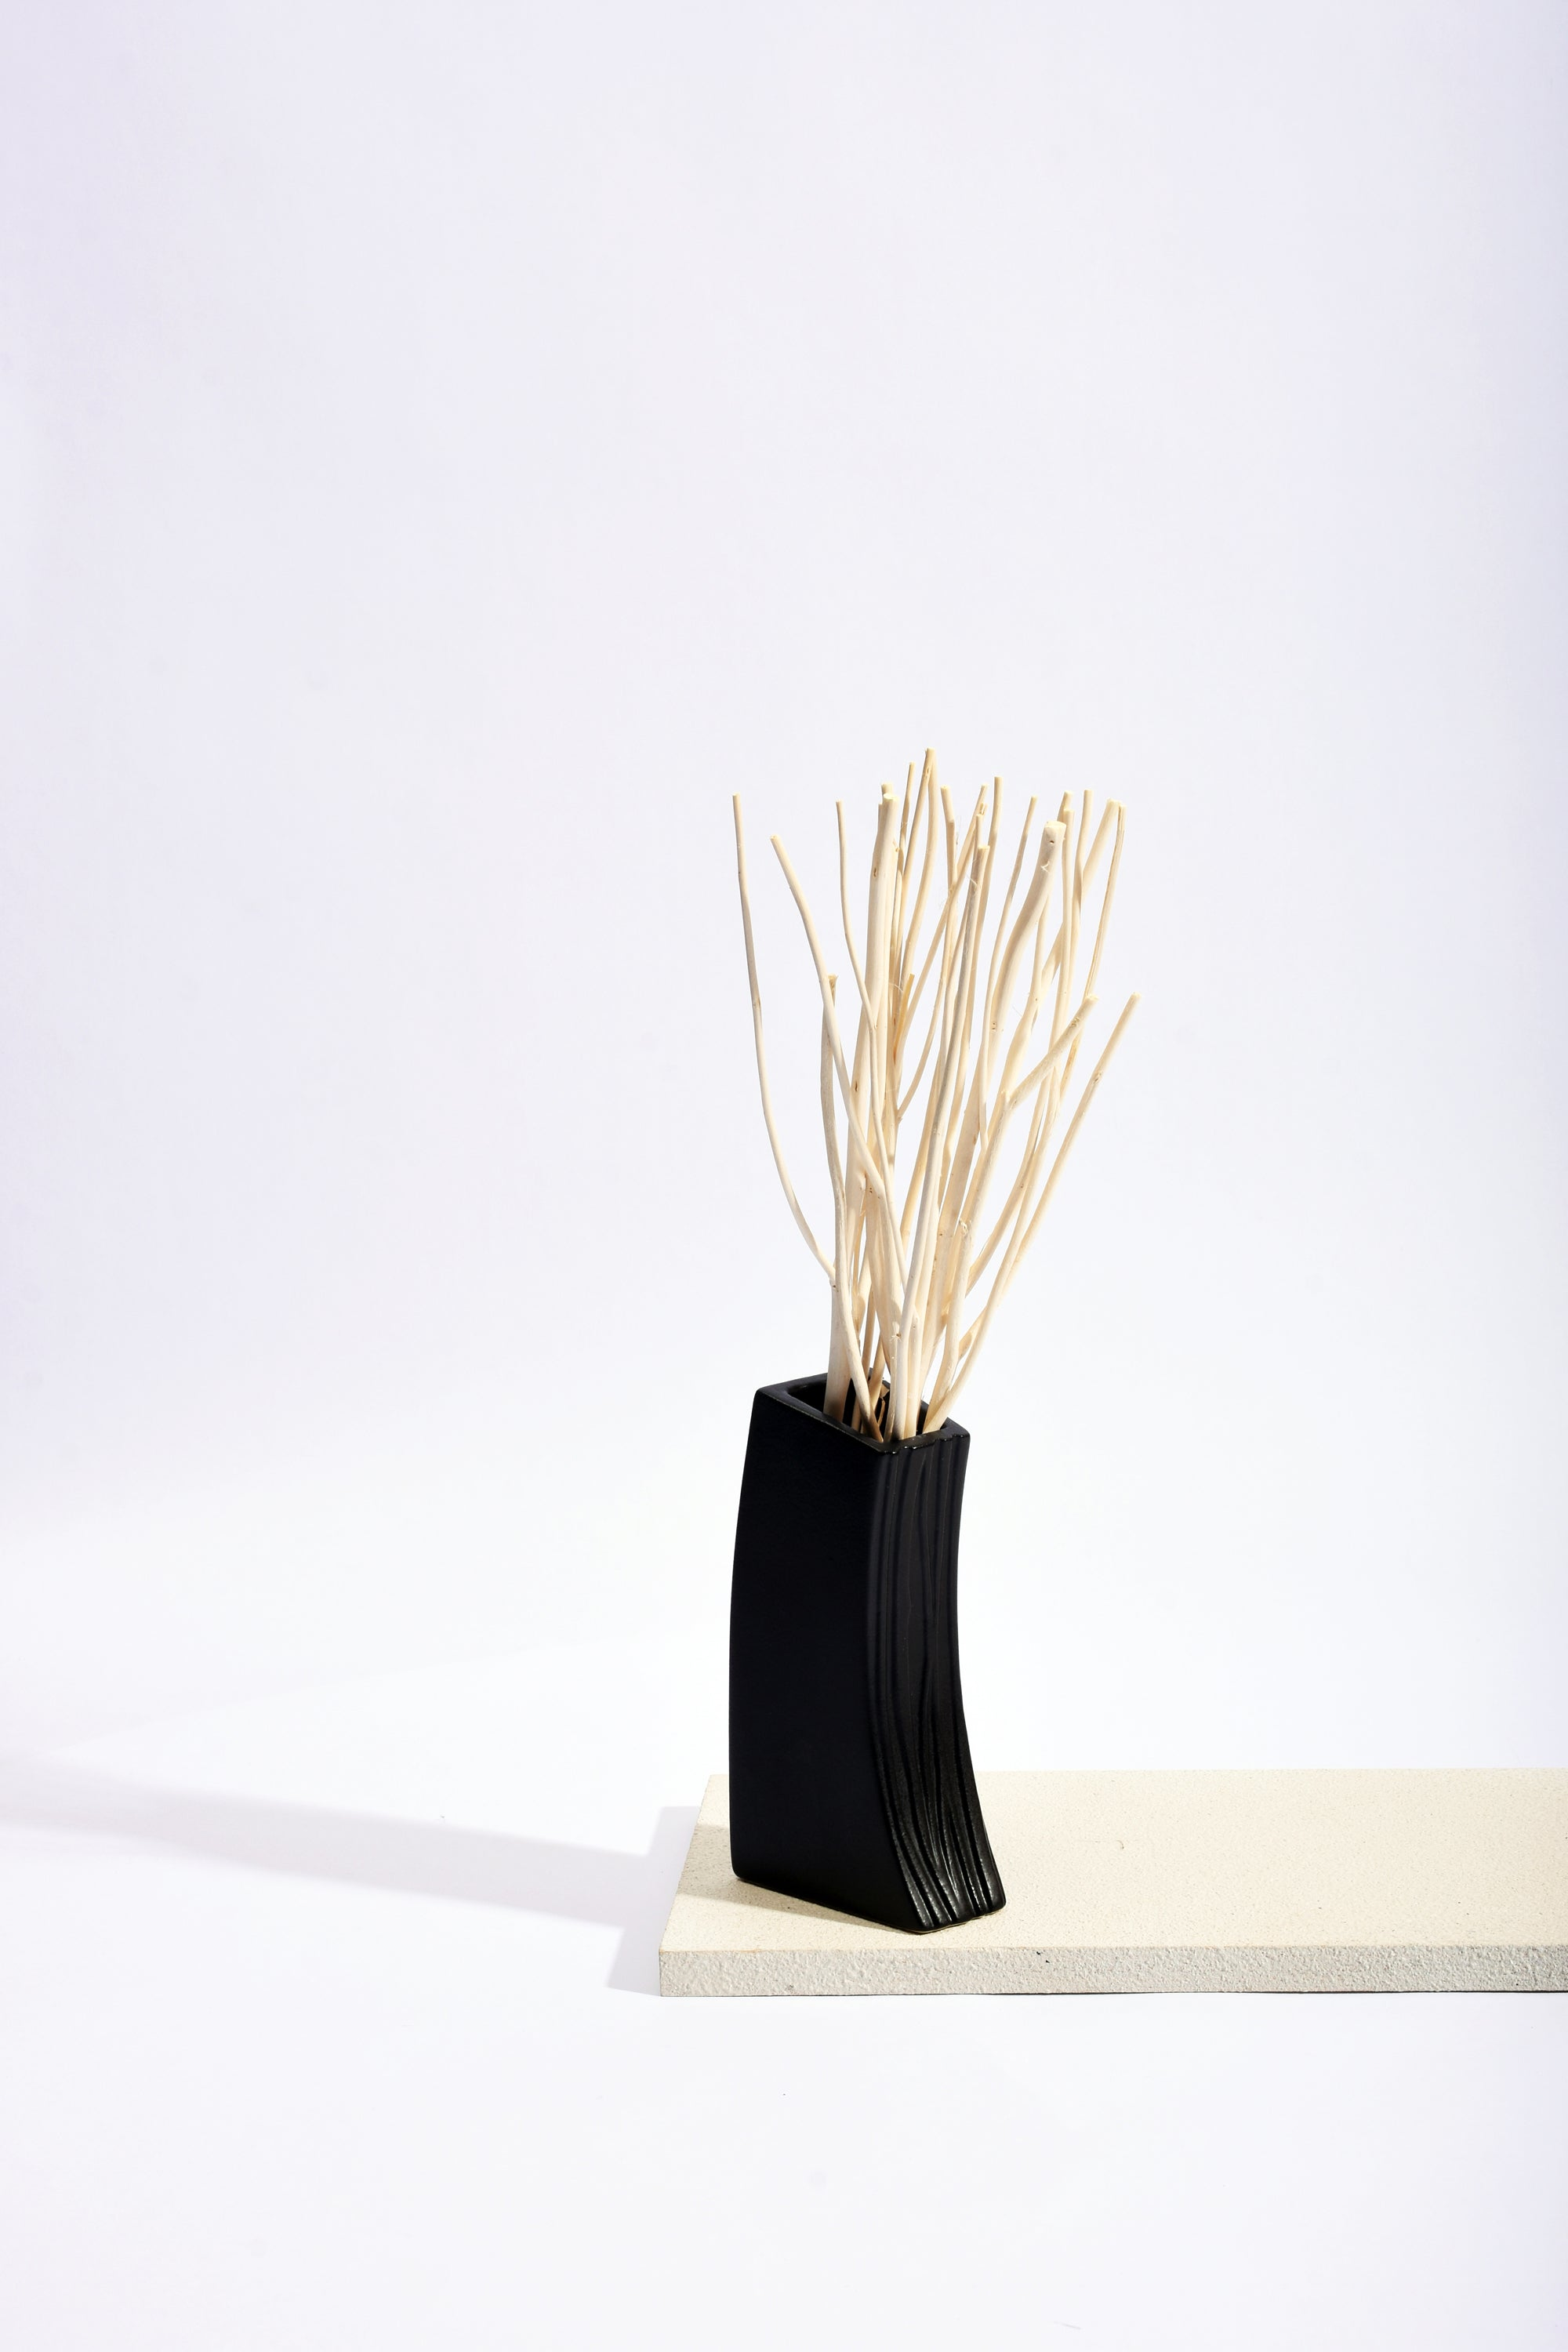 Home Diffuser Wicking Reeds - Banyan Tree Gallery